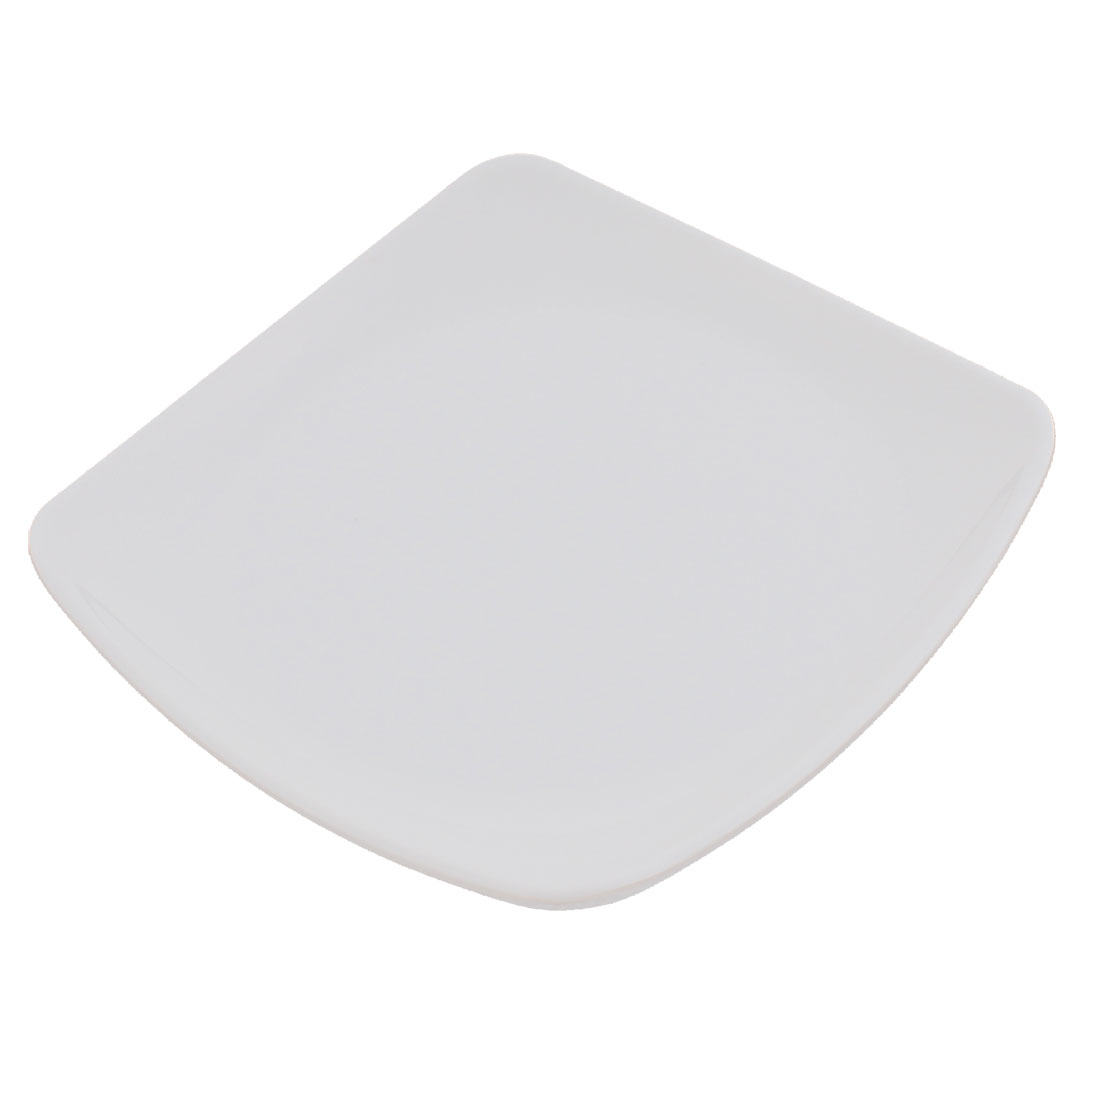 Square Shape Dinner Food Dessert Plate Dish 165mm x 165mm White